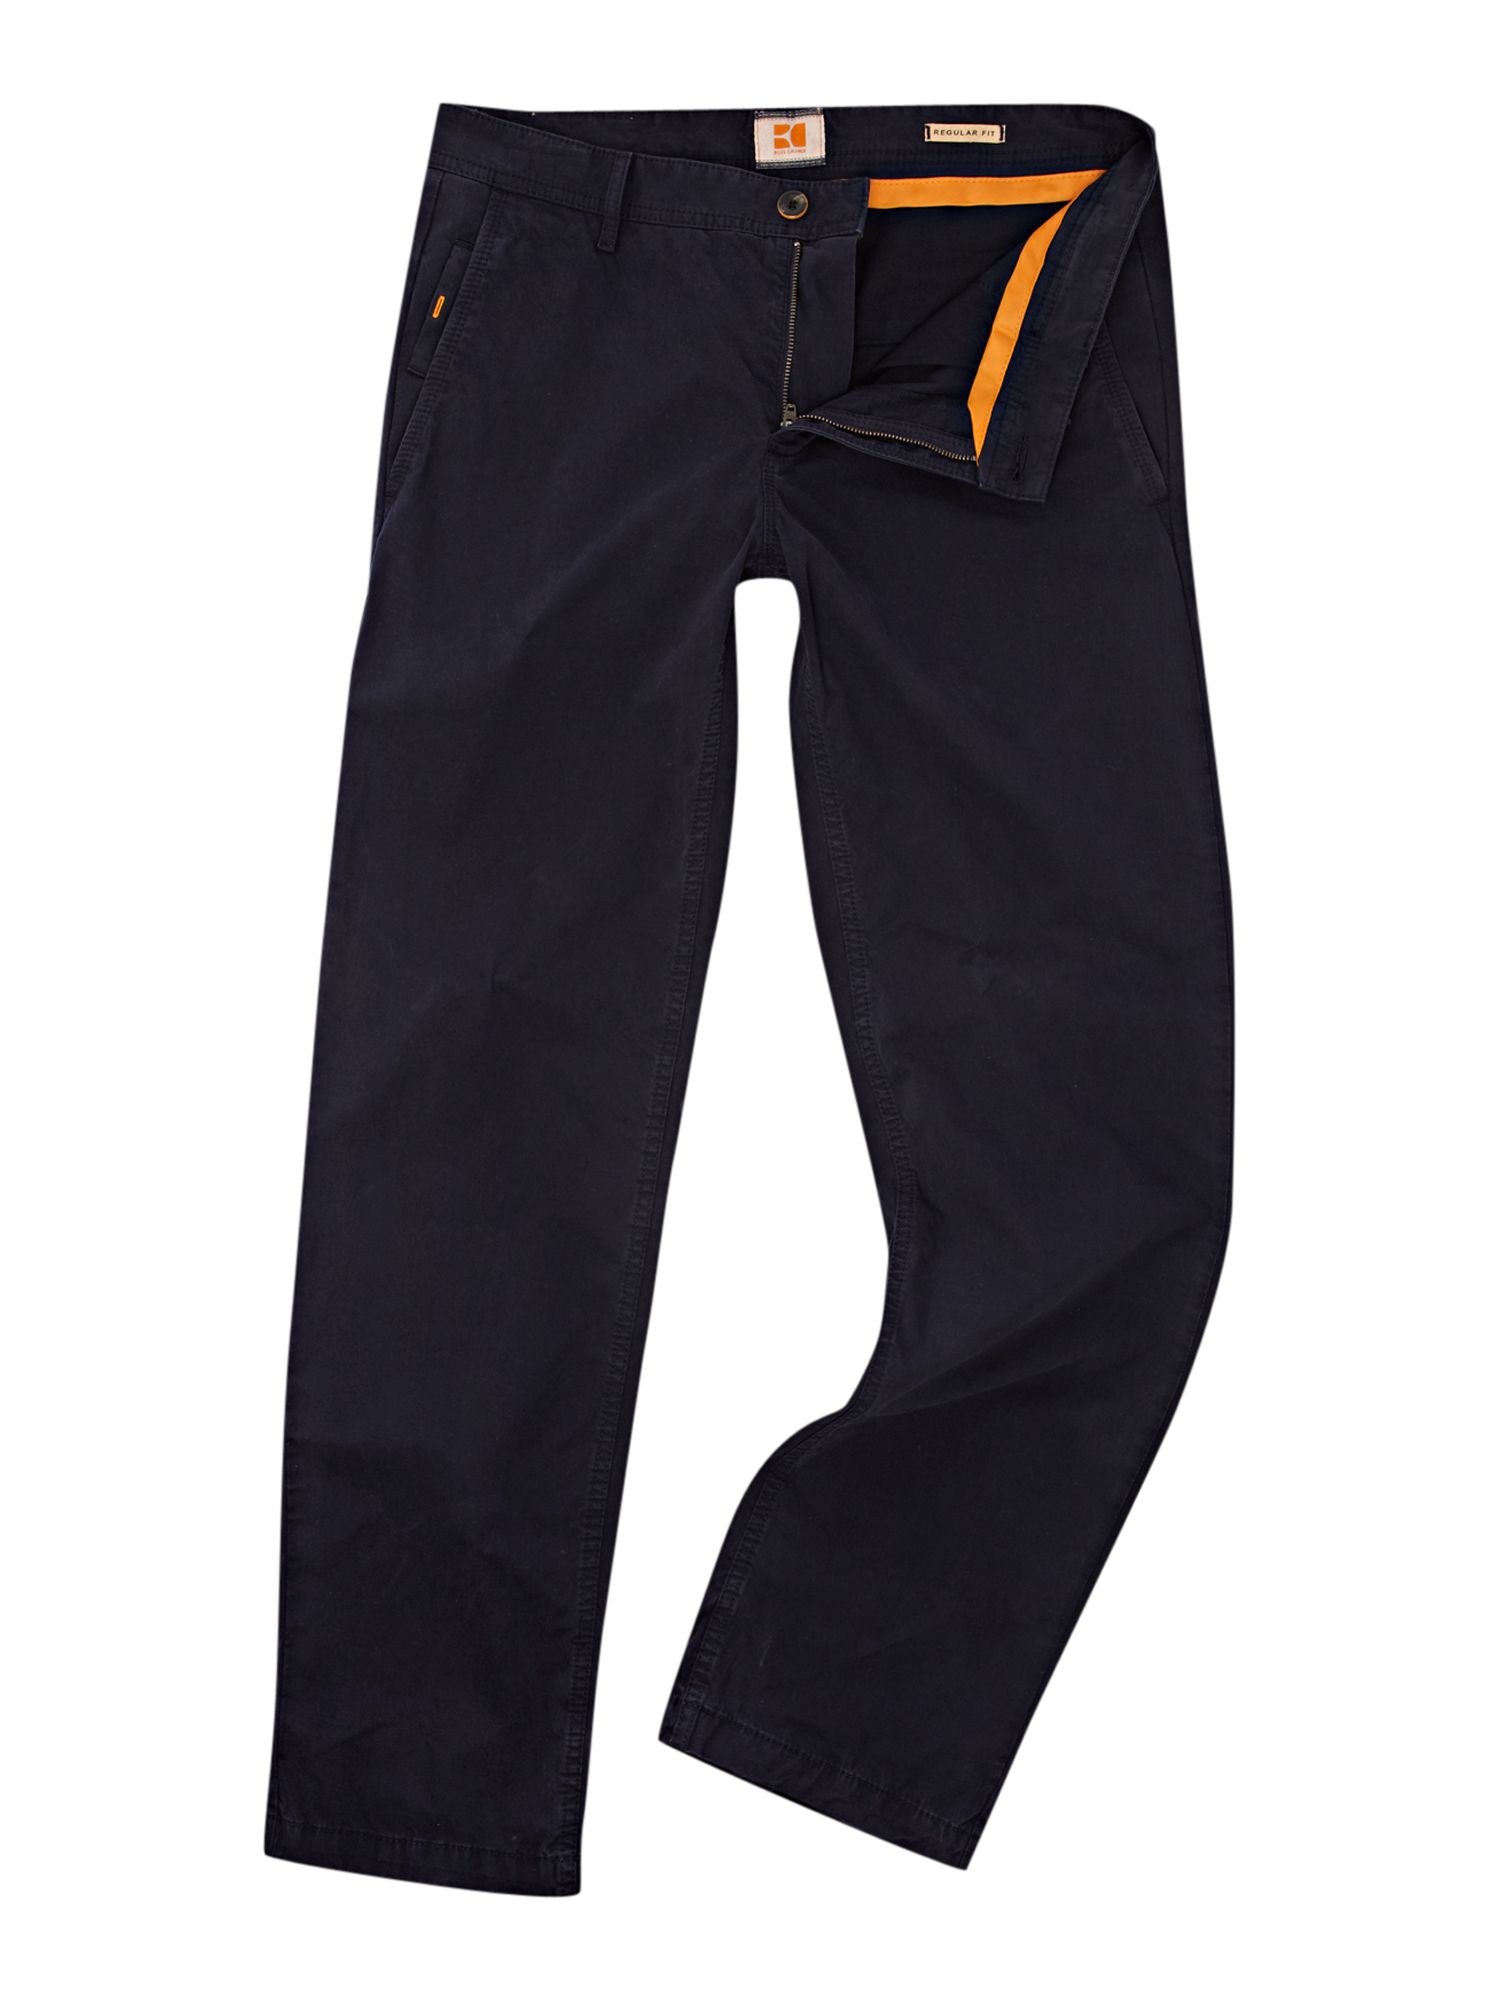 Schino regular fit chino trousers